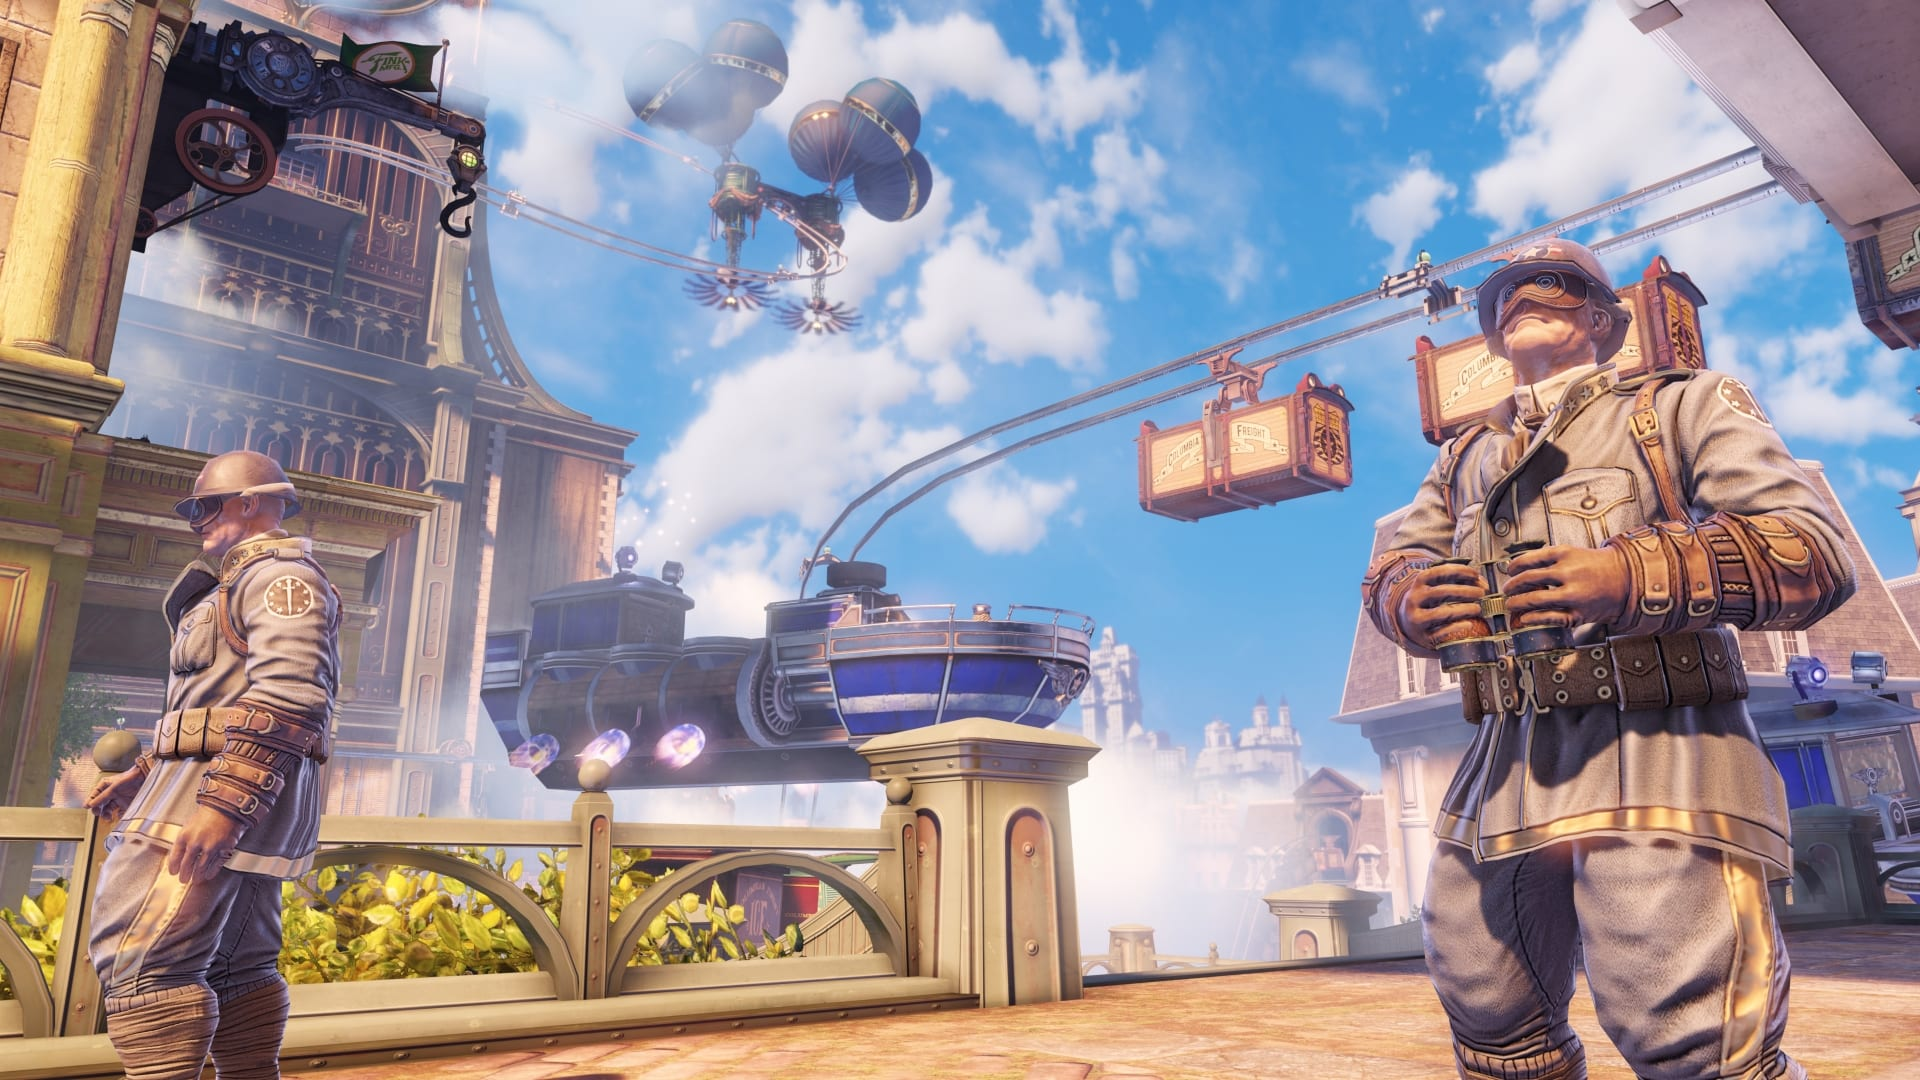 The vividly imagined floating city of Columbia, circa 1912, is the setting for Bioshock Infinite. The latest game in the critically acclaimed series tops The Guildhall at SMU's 2013 Top 10 Gifts for Giving list.